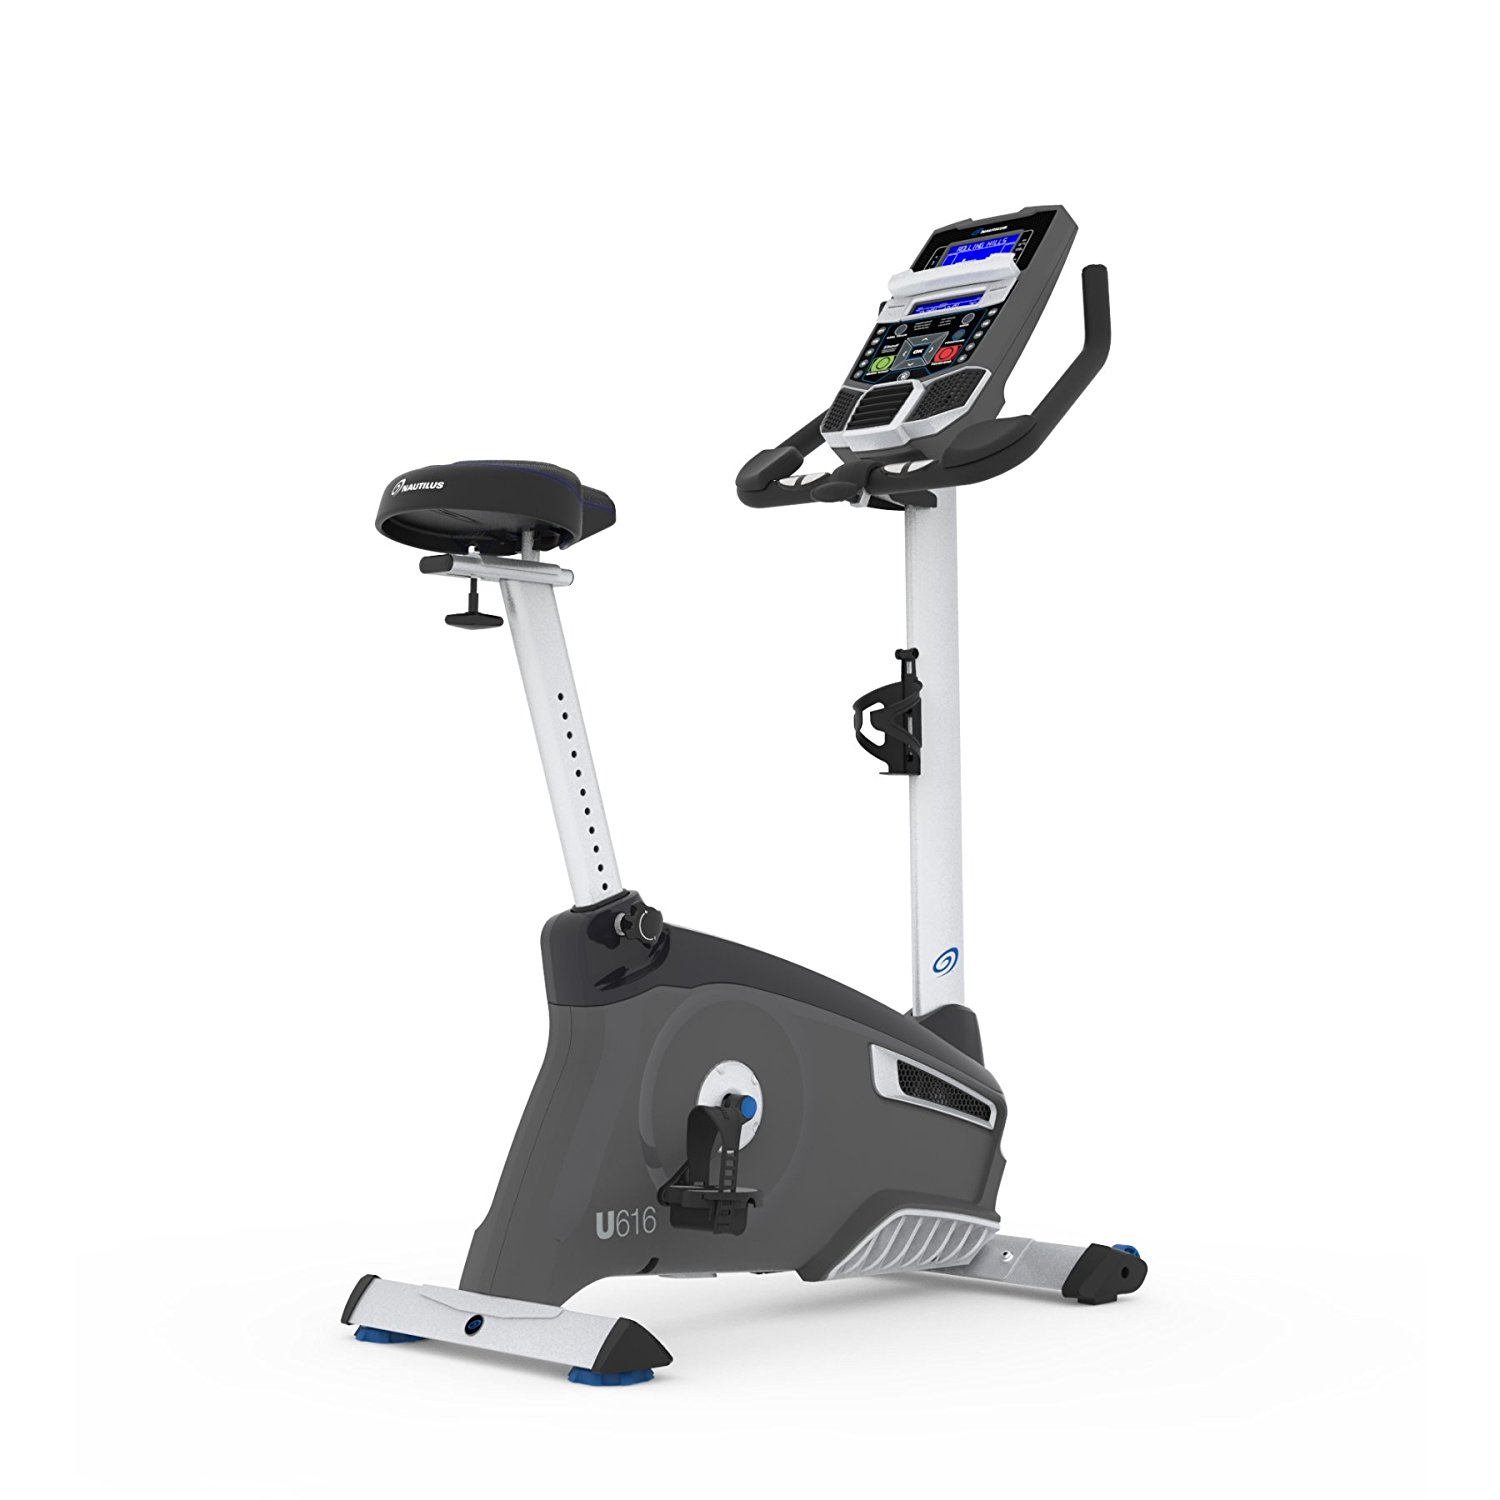 Nautilus U616 Upright Exercise Bike With Bluetooth Workout Tracking